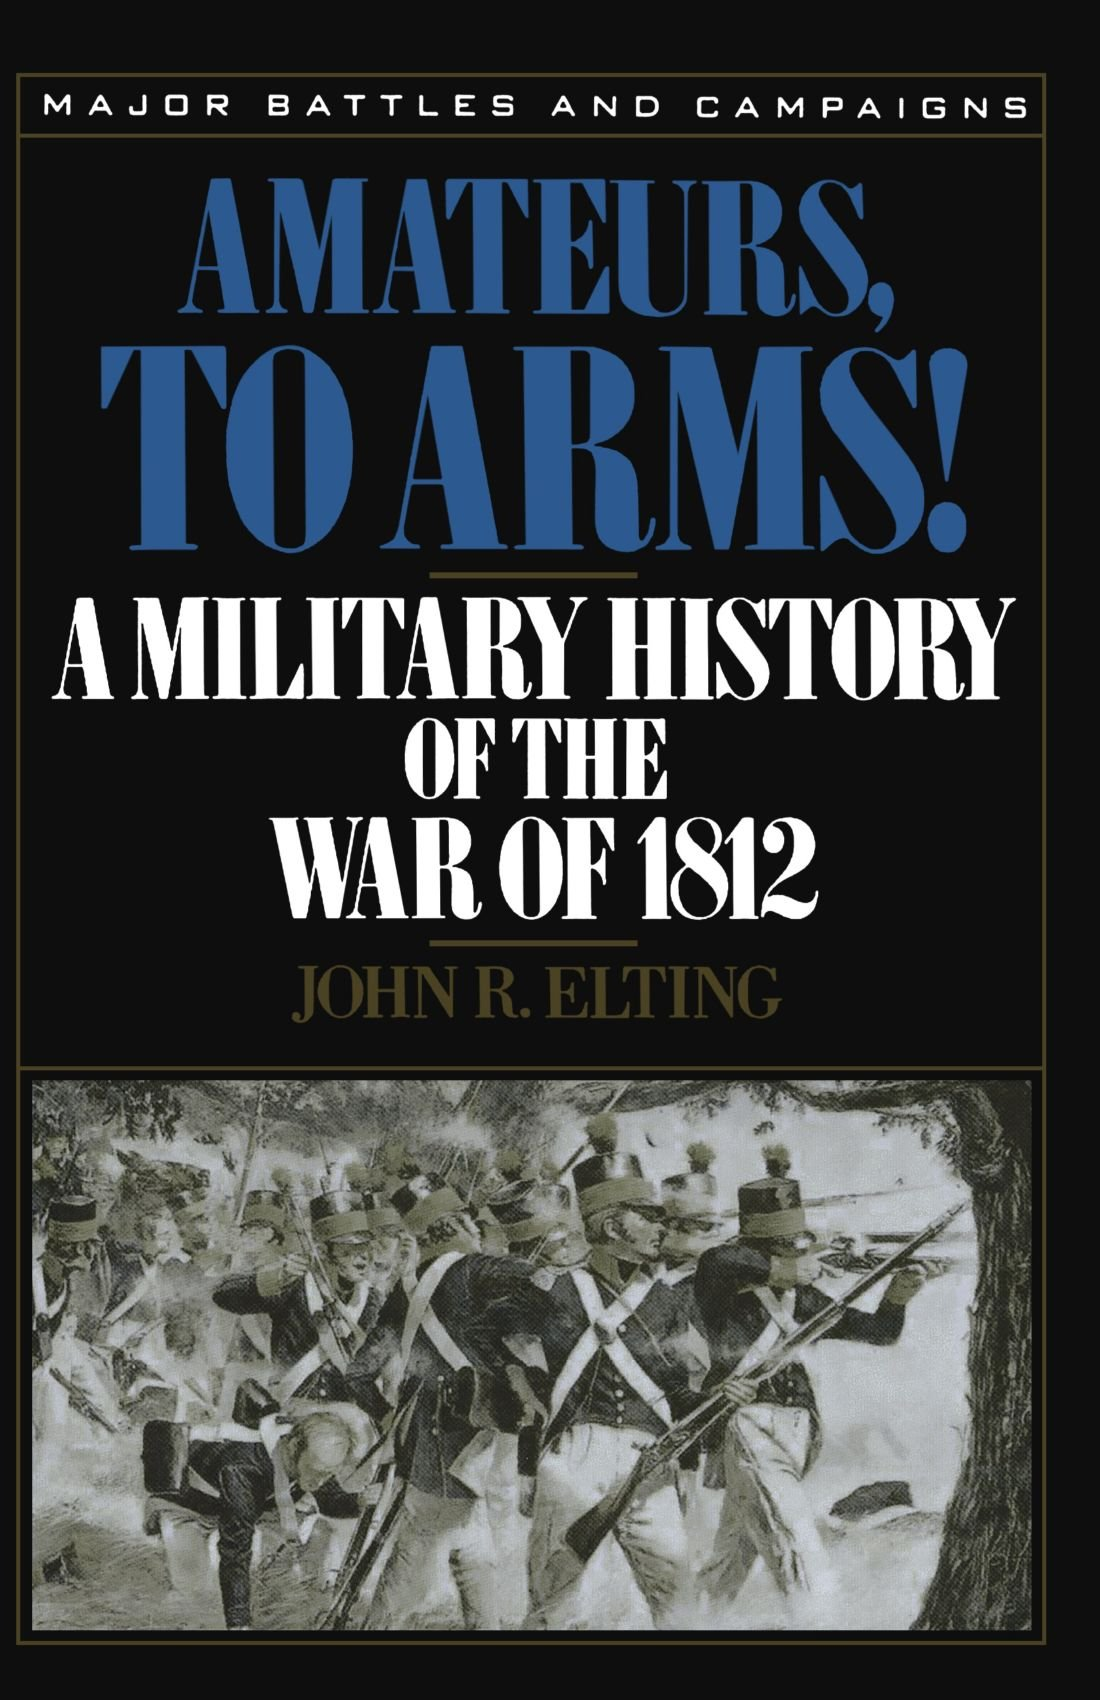 Amateurs, To Arms!: A Military History Of The War Of 1812 (Major Battles  and Campaigns): John R. Elting: 9780306806537: Amazon.com: Books